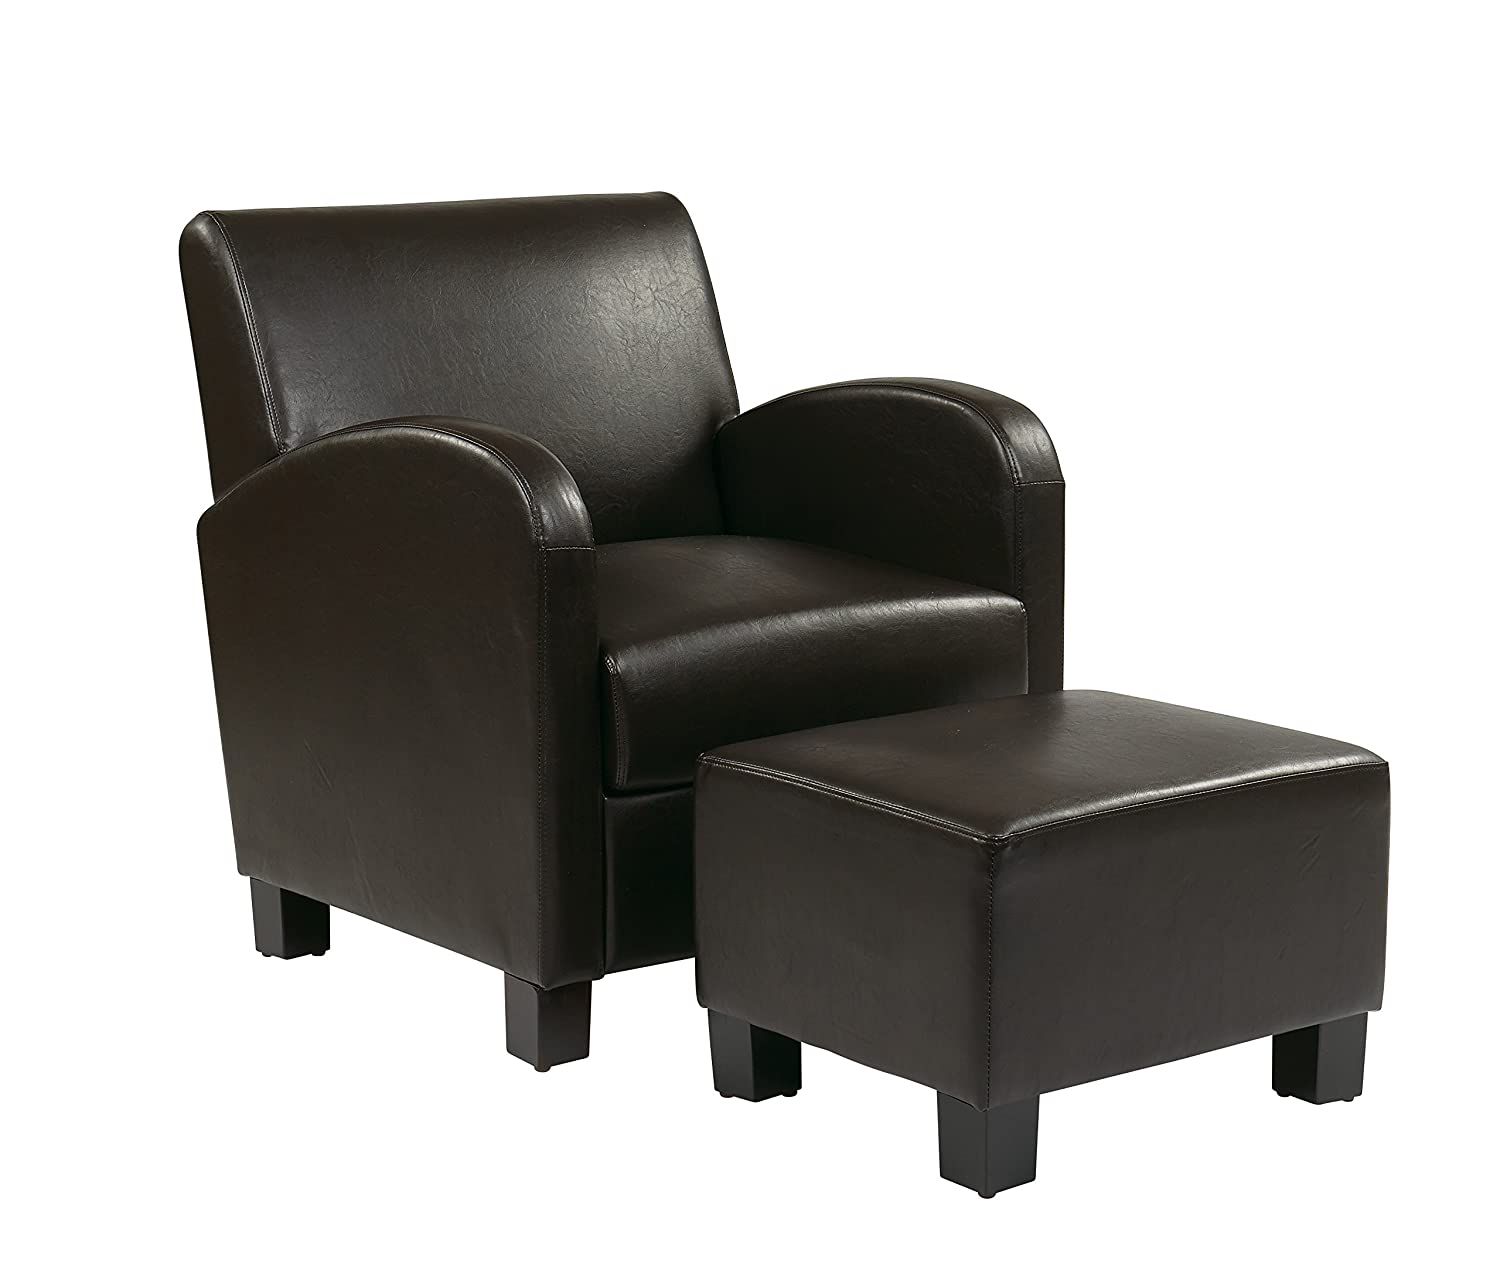 Wondrous Office Star Metro Faux Leather Club Chair With Ottoman And Espresso Finish Legs Espresso Ncnpc Chair Design For Home Ncnpcorg